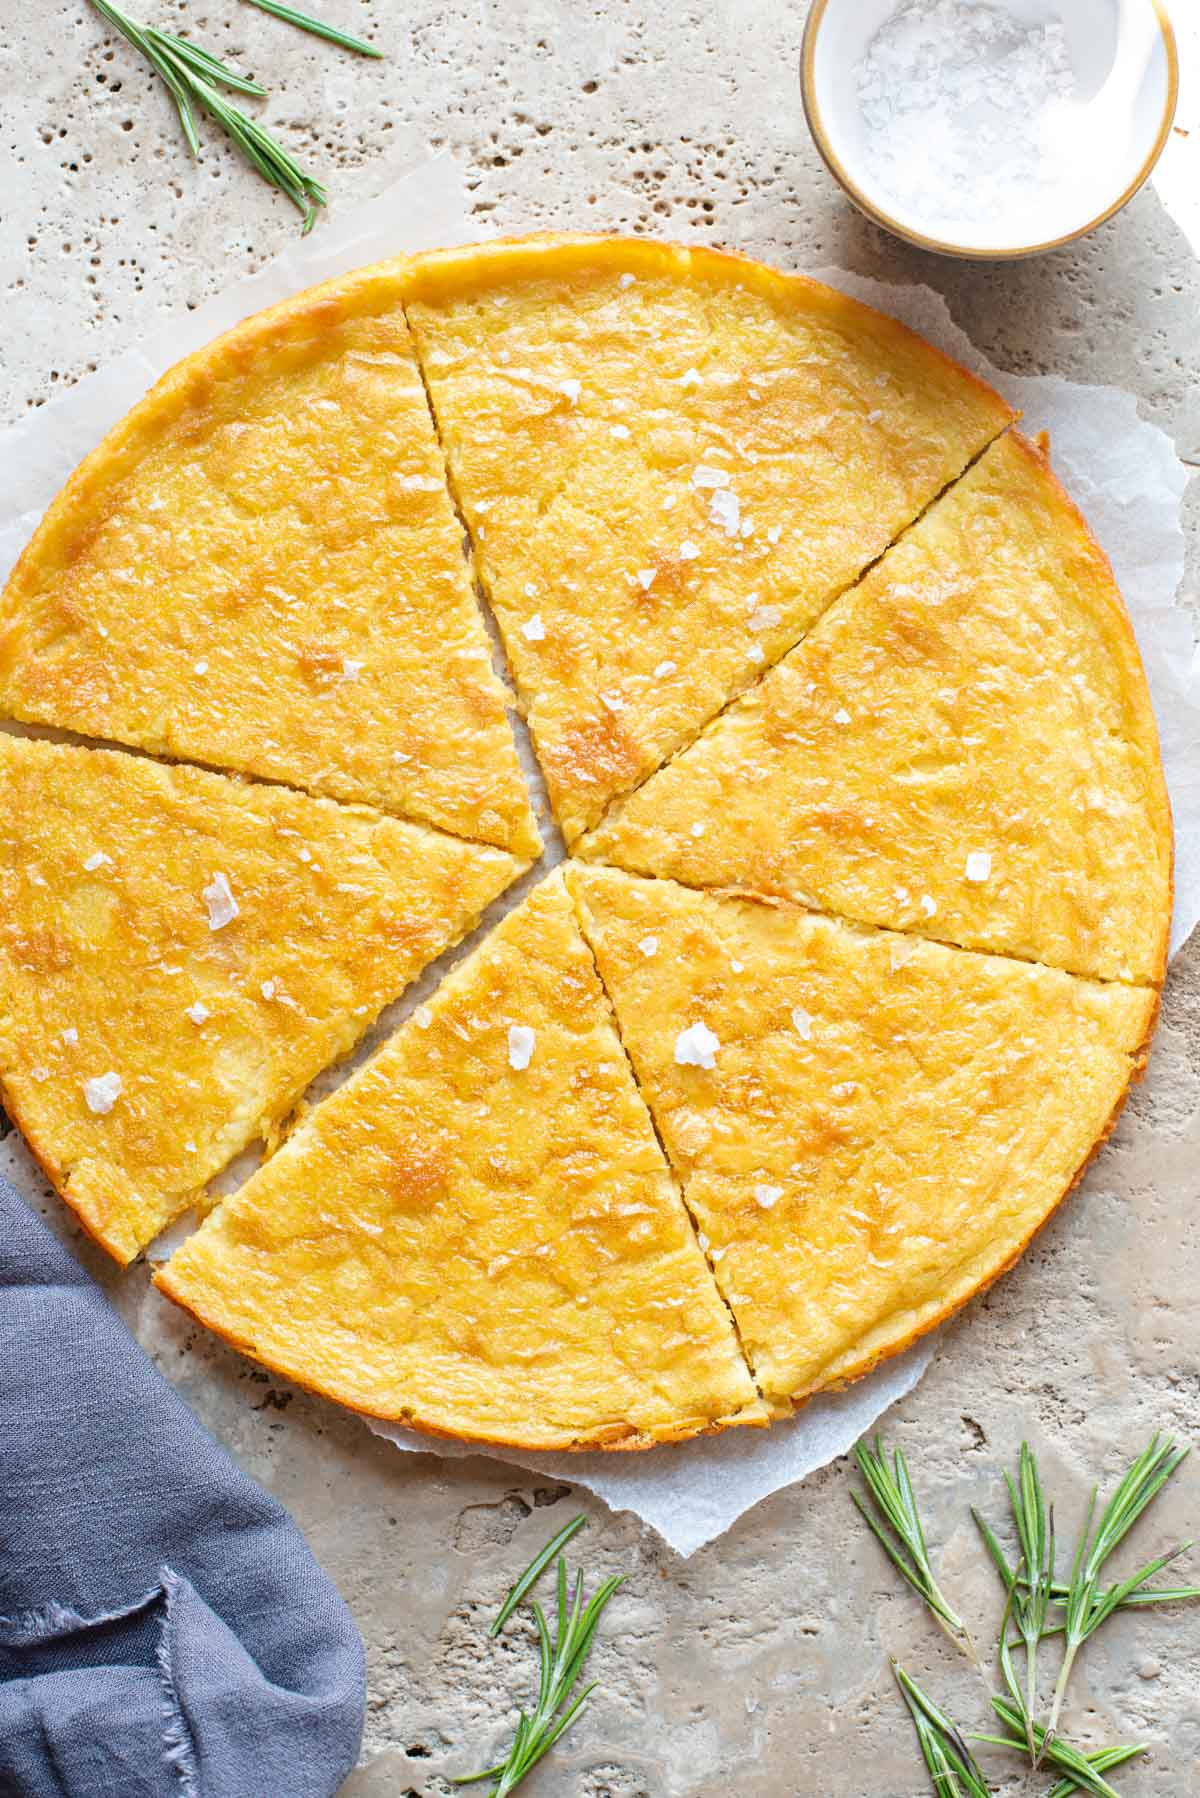 An overhead shot of a Tuscan chickpea flatbread on a stone worktop